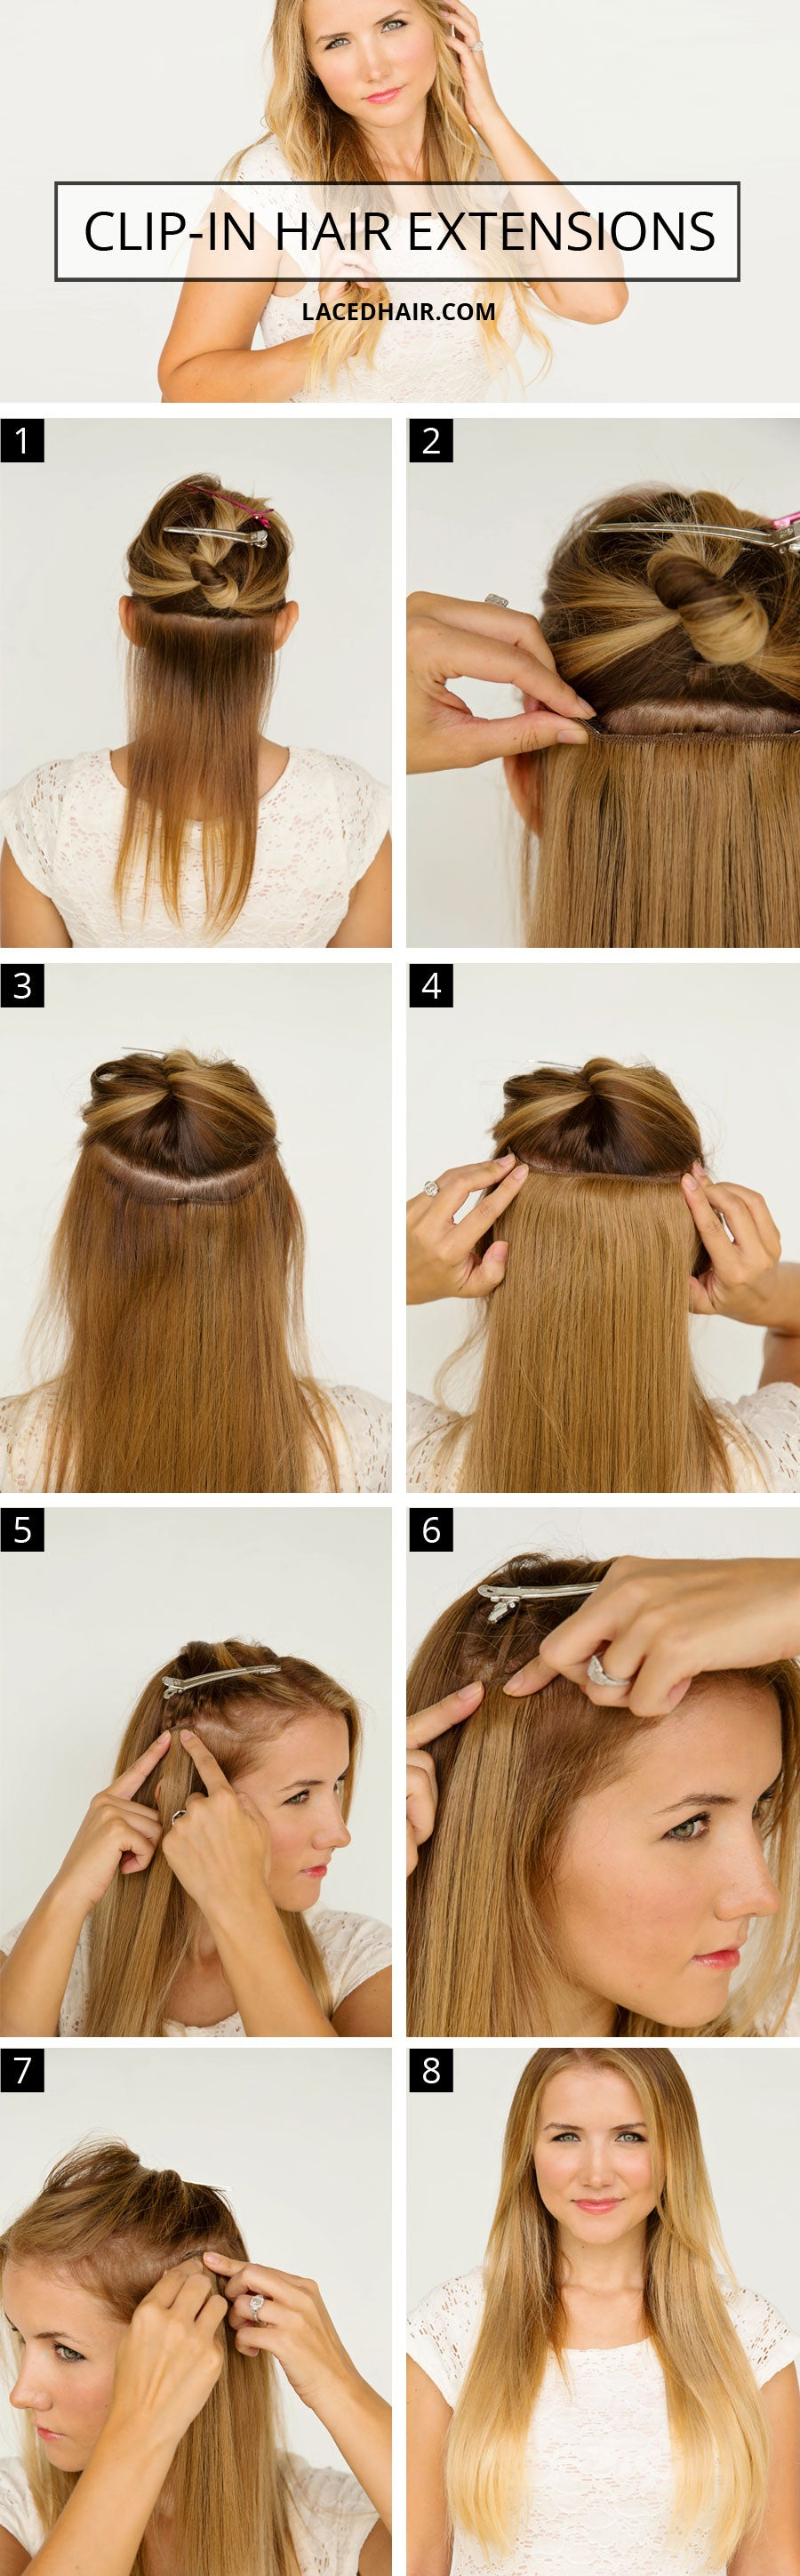 how to wear clipin hair extensions laced hair